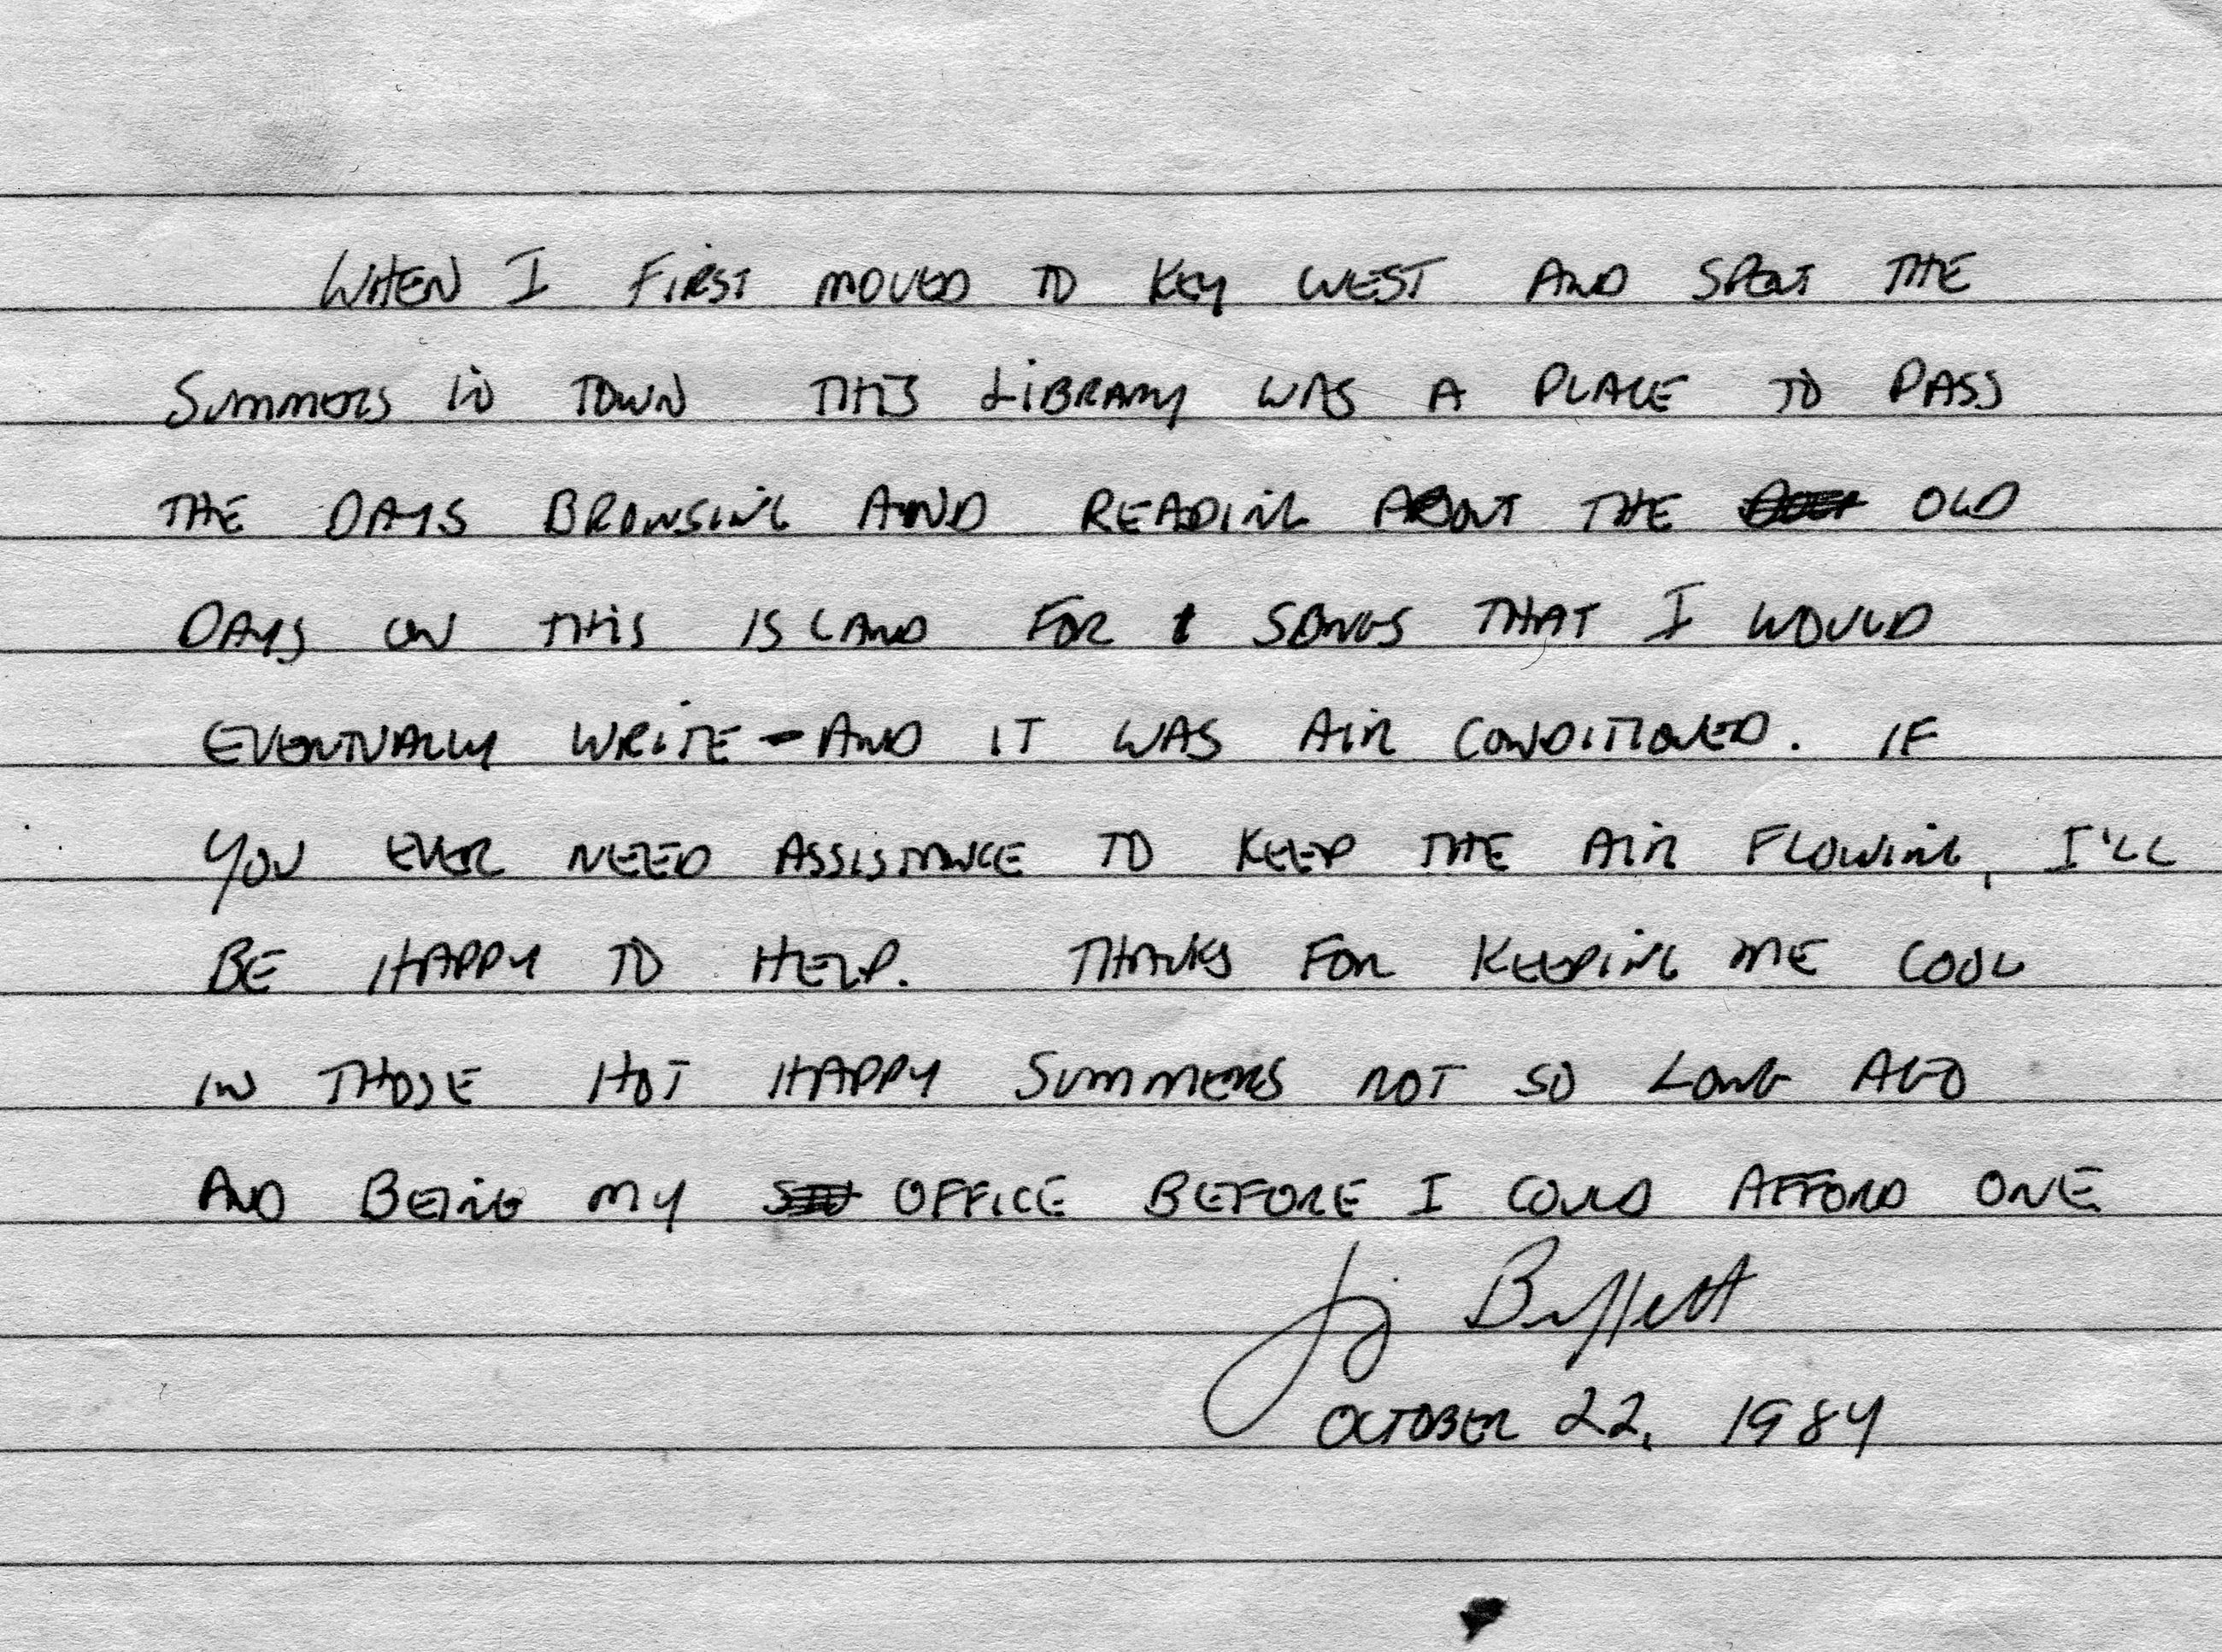 Jimmy Buffett&#39s handwritten note to Key West library (1989)